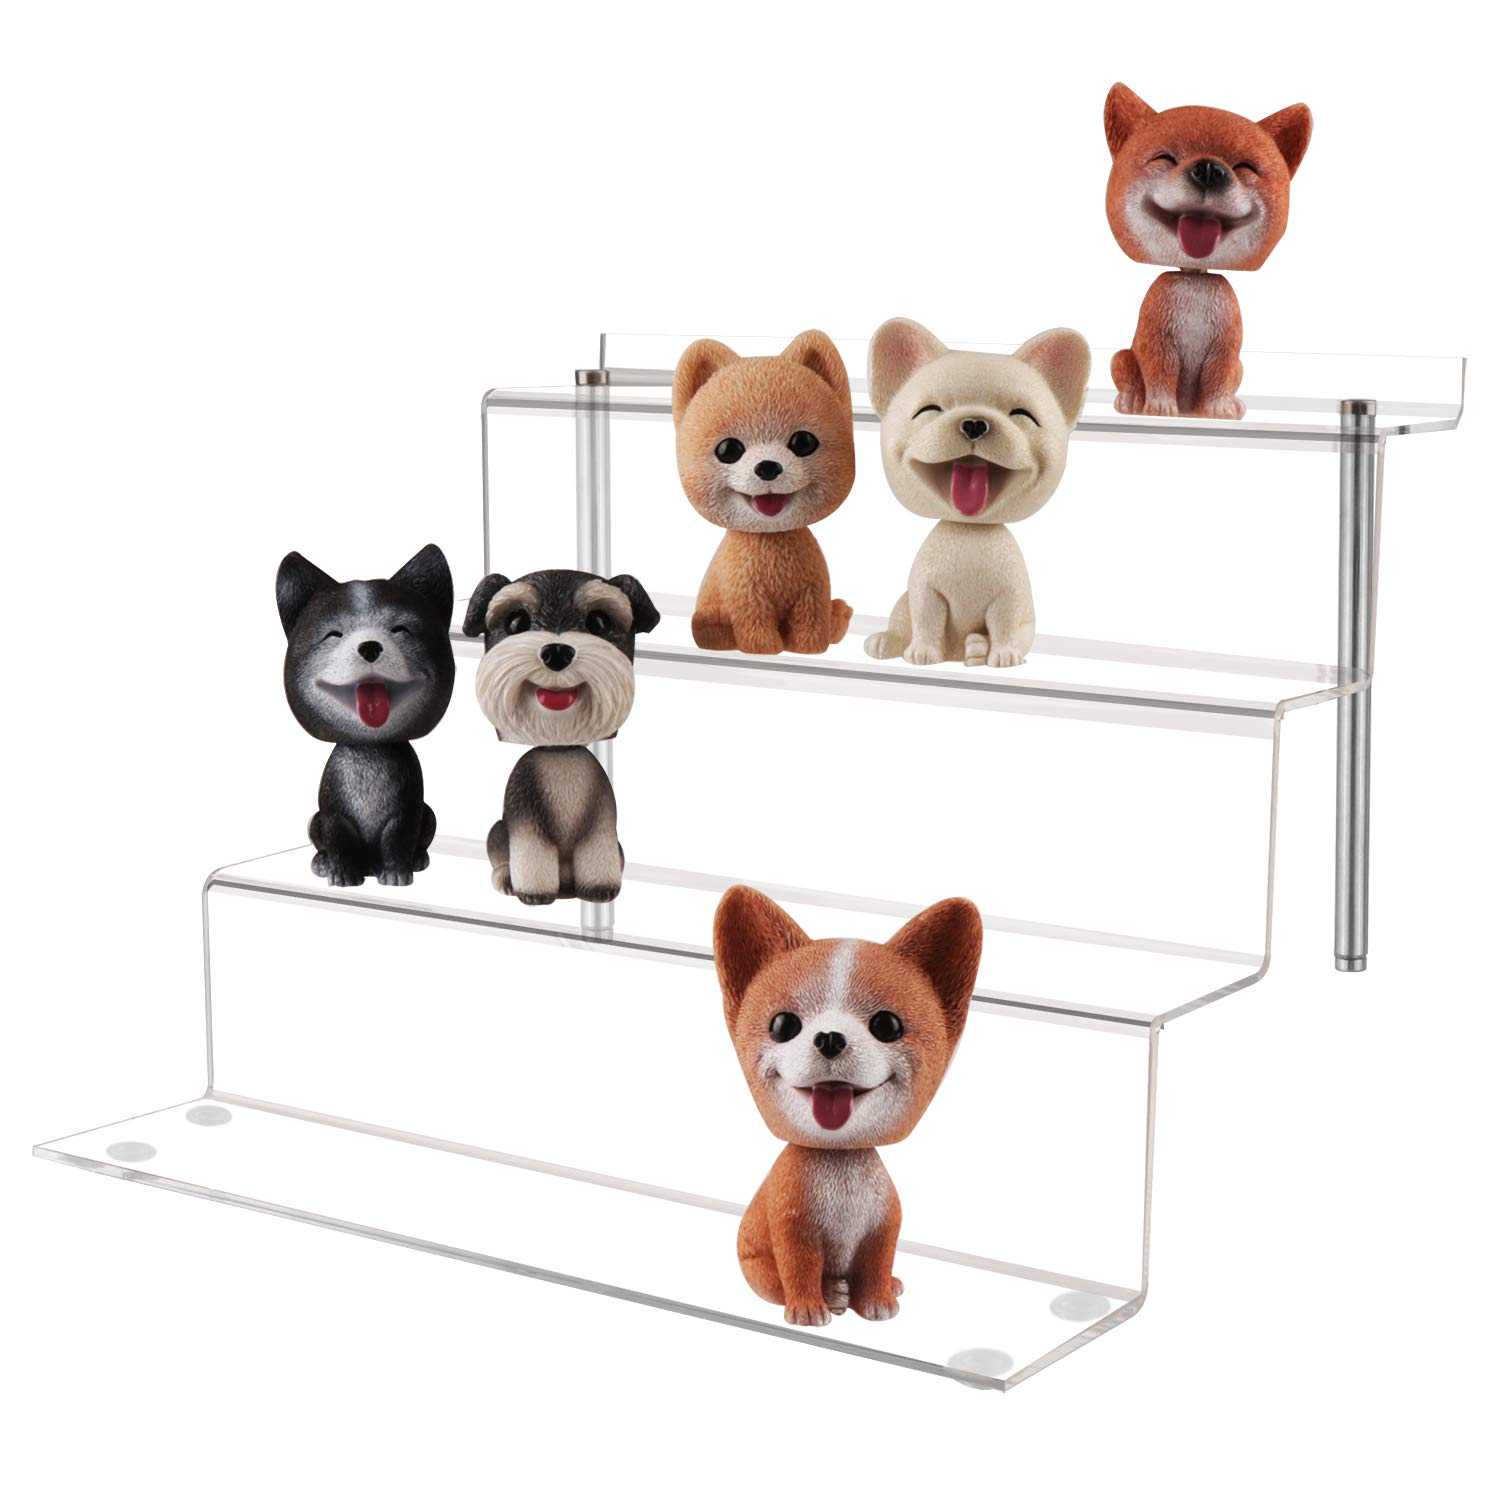 UPGRADED Large 4 Step Display Riser Shelf for Cupcake Dessert Product 12x11x8.8 Inch LileZbox Acrylic Display Stand for Funko Pops Amiibo Figures 2 Pack